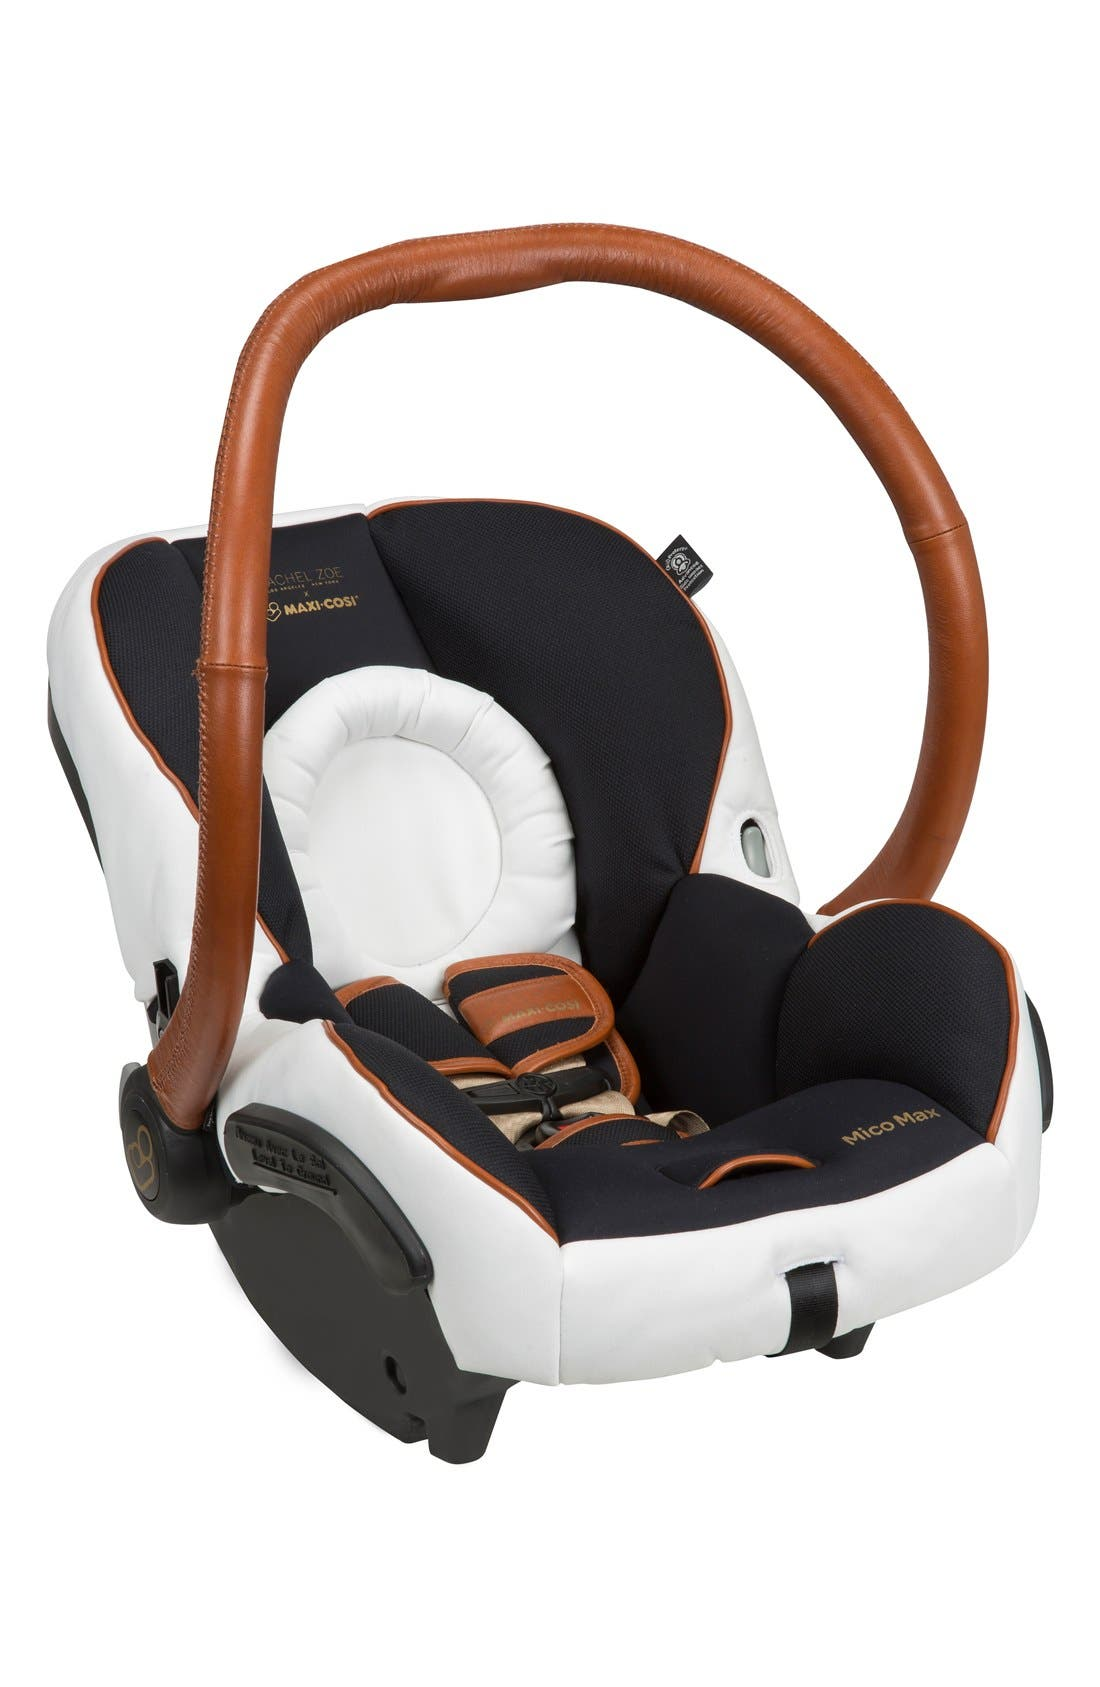 Infant MaxiCosi X Rachel Zoe Mico Max 30  Special Edition Infant Car Seat Size One Size  Black